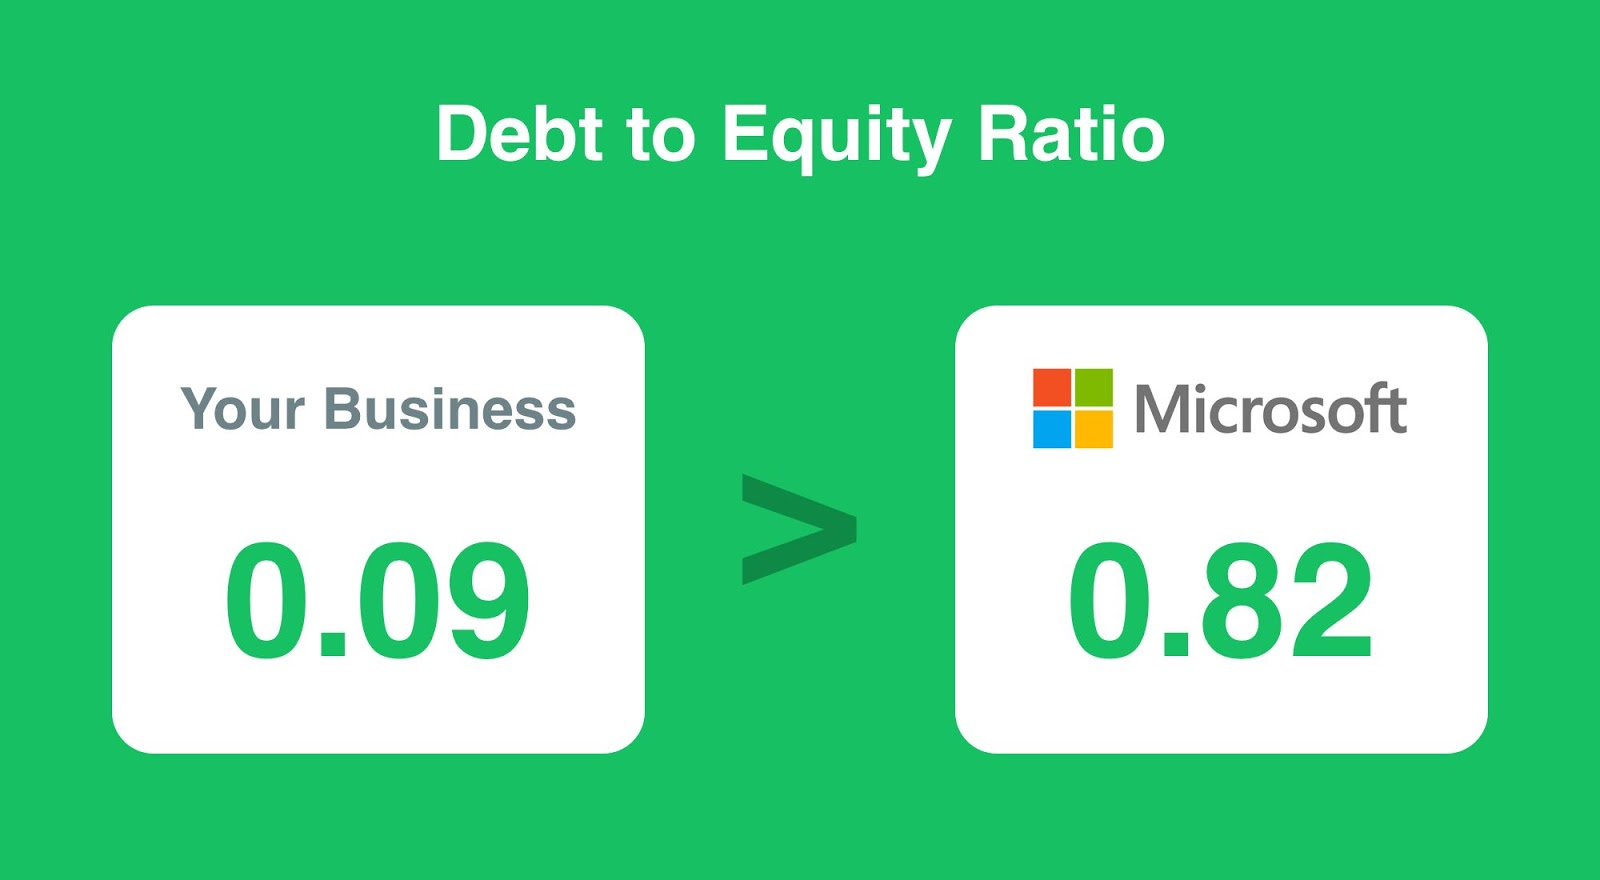 debt-to-equity-comparison-large-vs-small-company